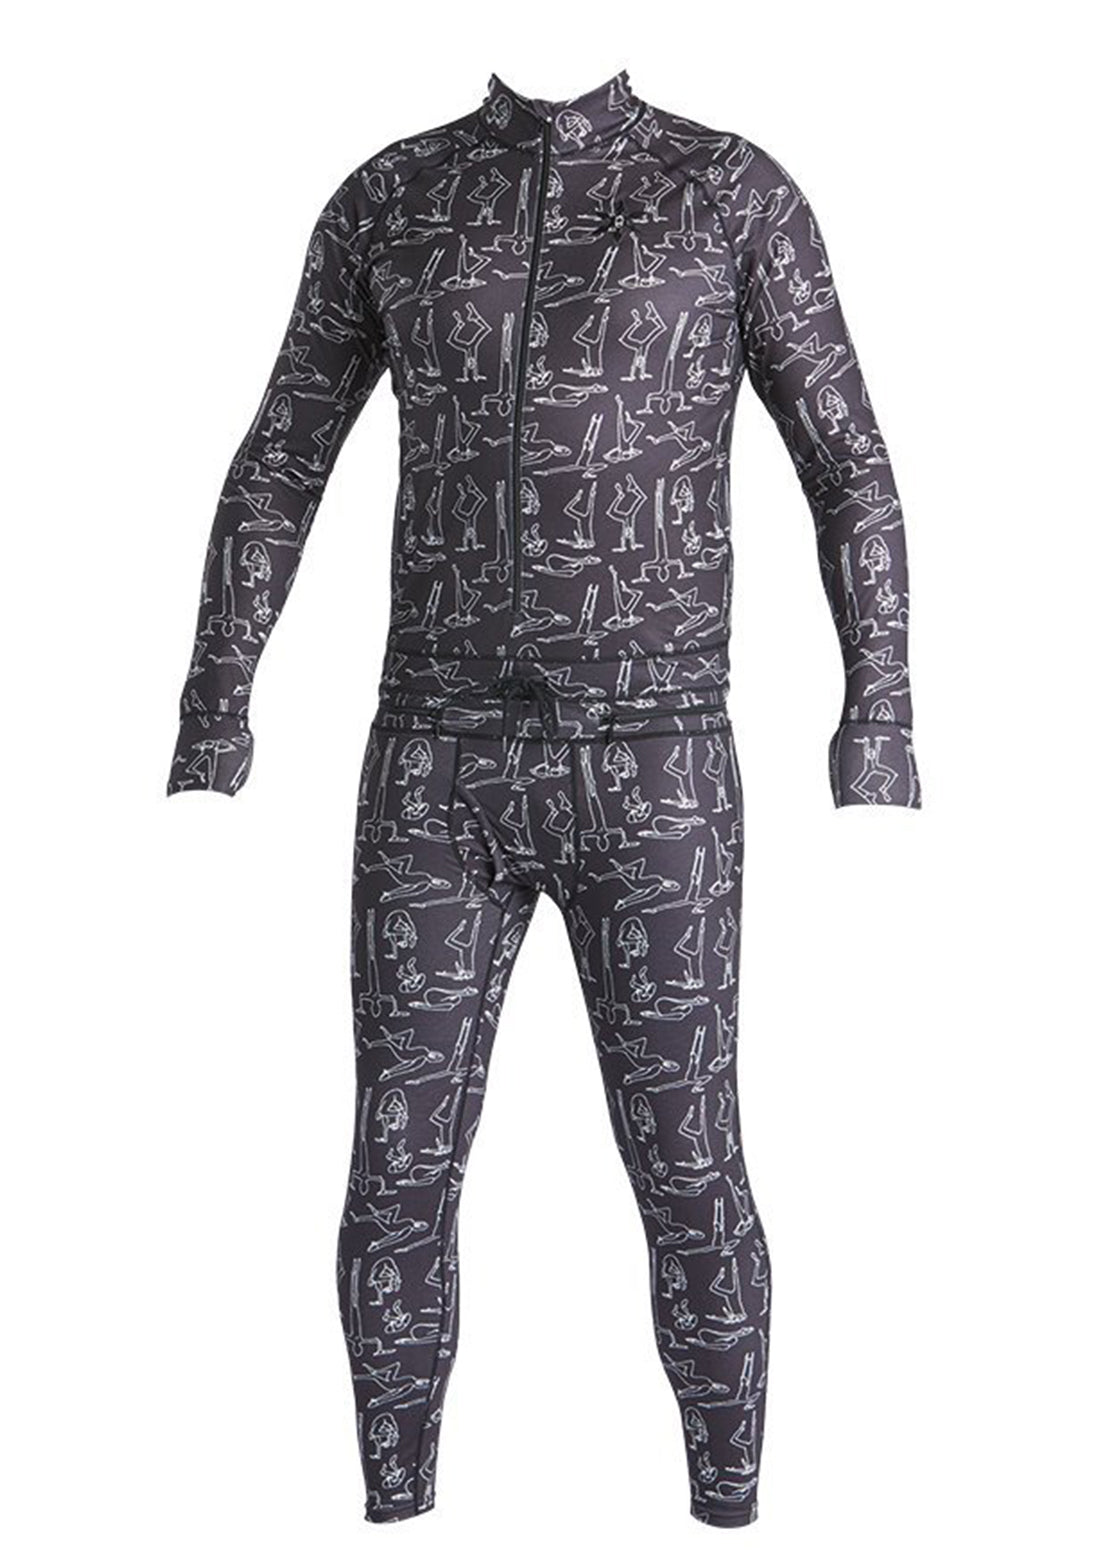 Airblaster Men's Hoodless Ninja Suit First Layer TP Yogis